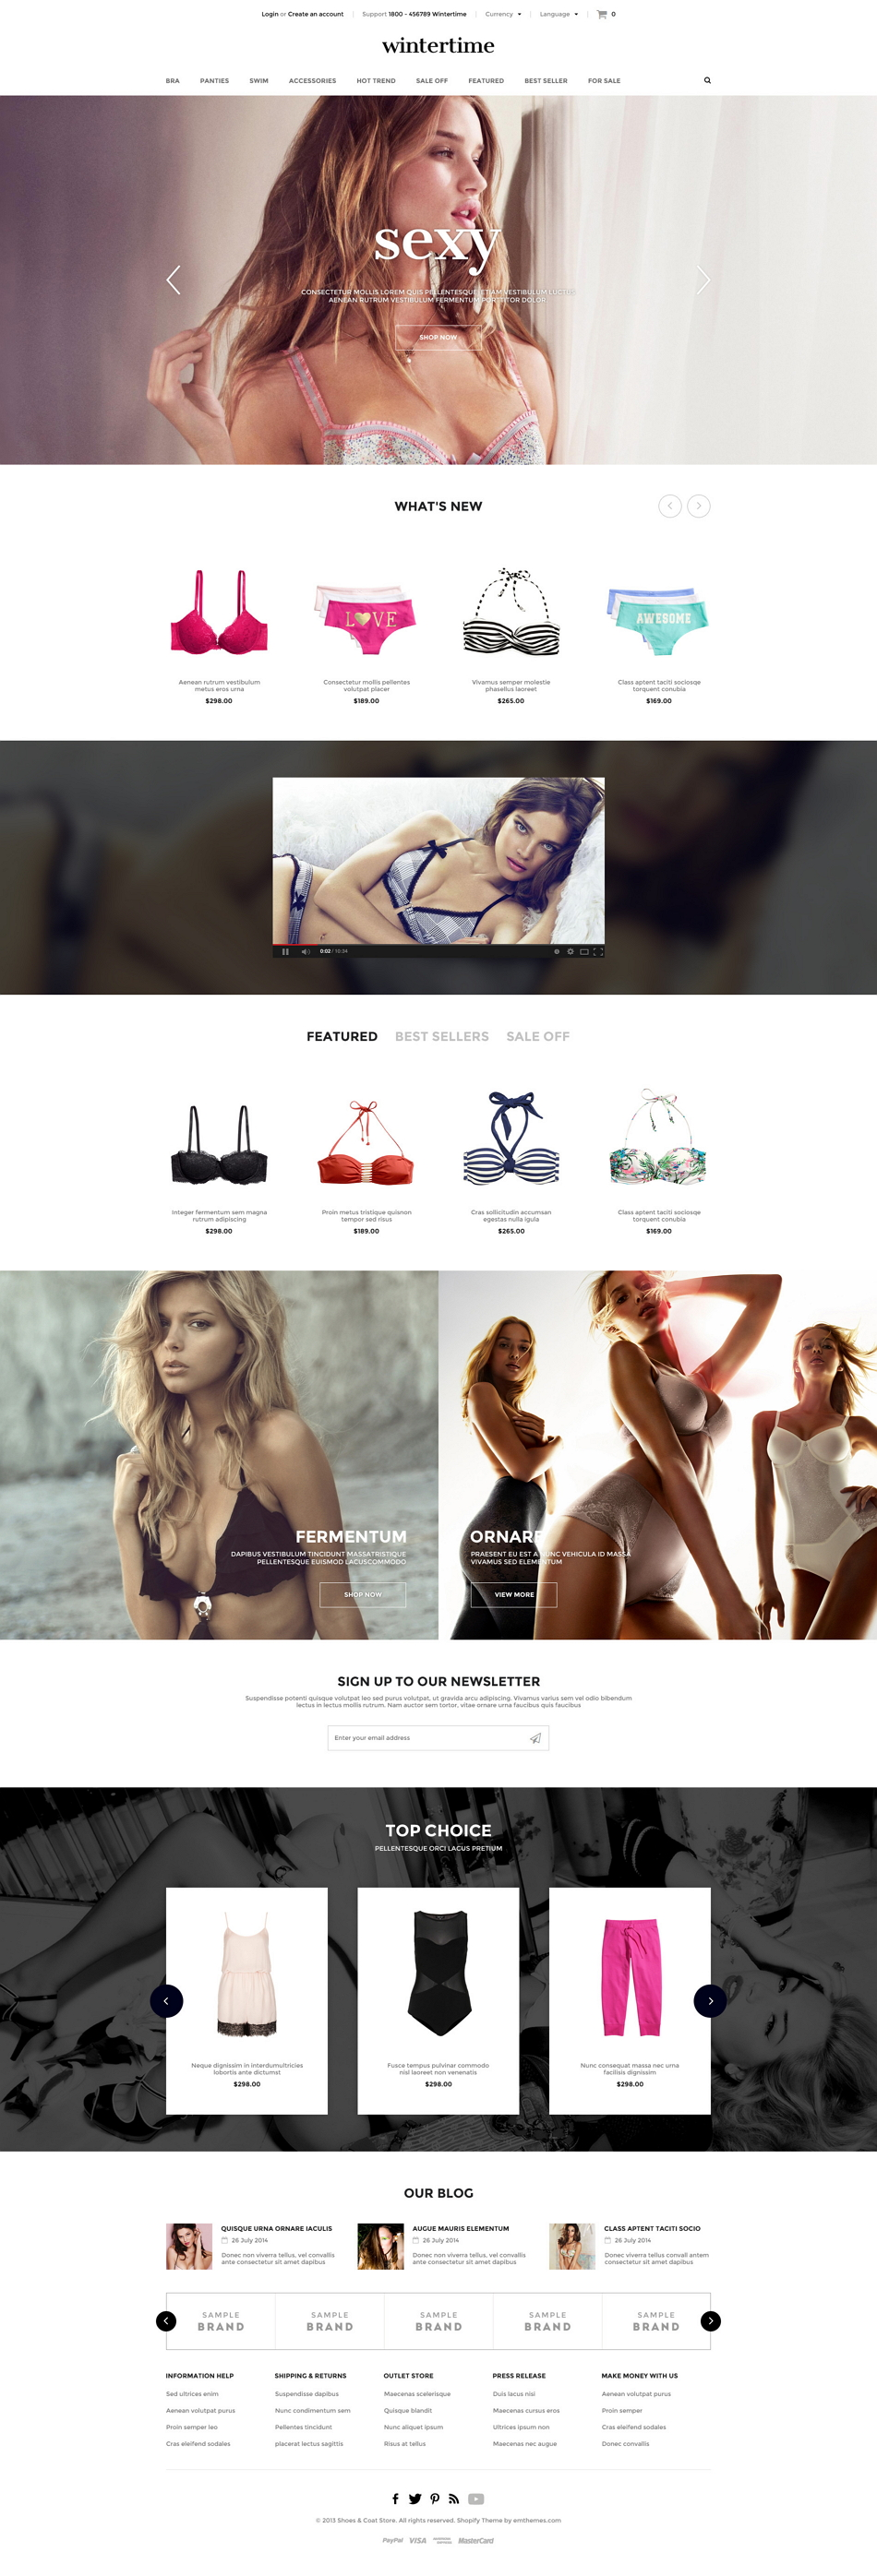 WinterTime is an new premium responsive Shopify Theme. It is suitable for any kind of online sto ...